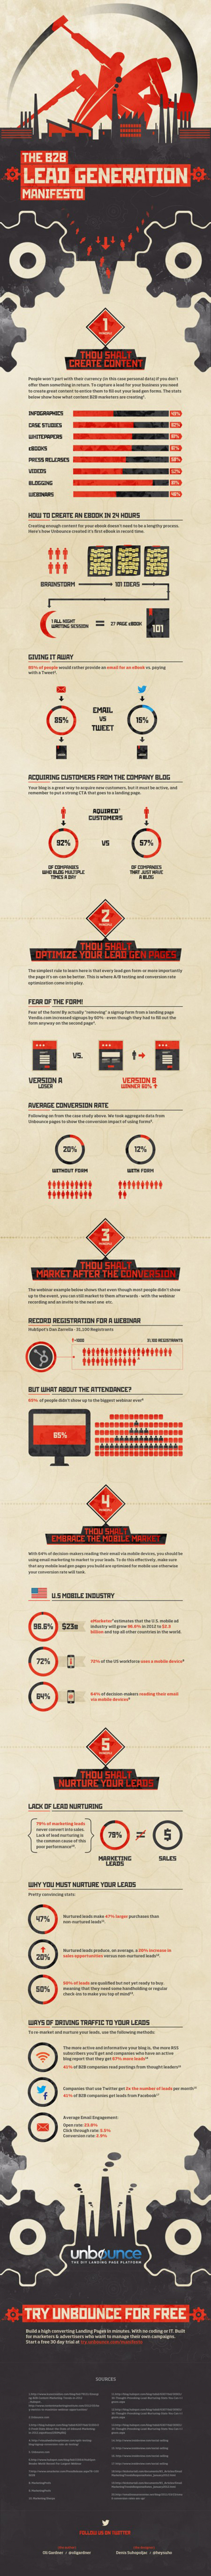 5 Principles Of B2B Lead Generation [Infographic] | Business Growth and Operations | Scoop.it